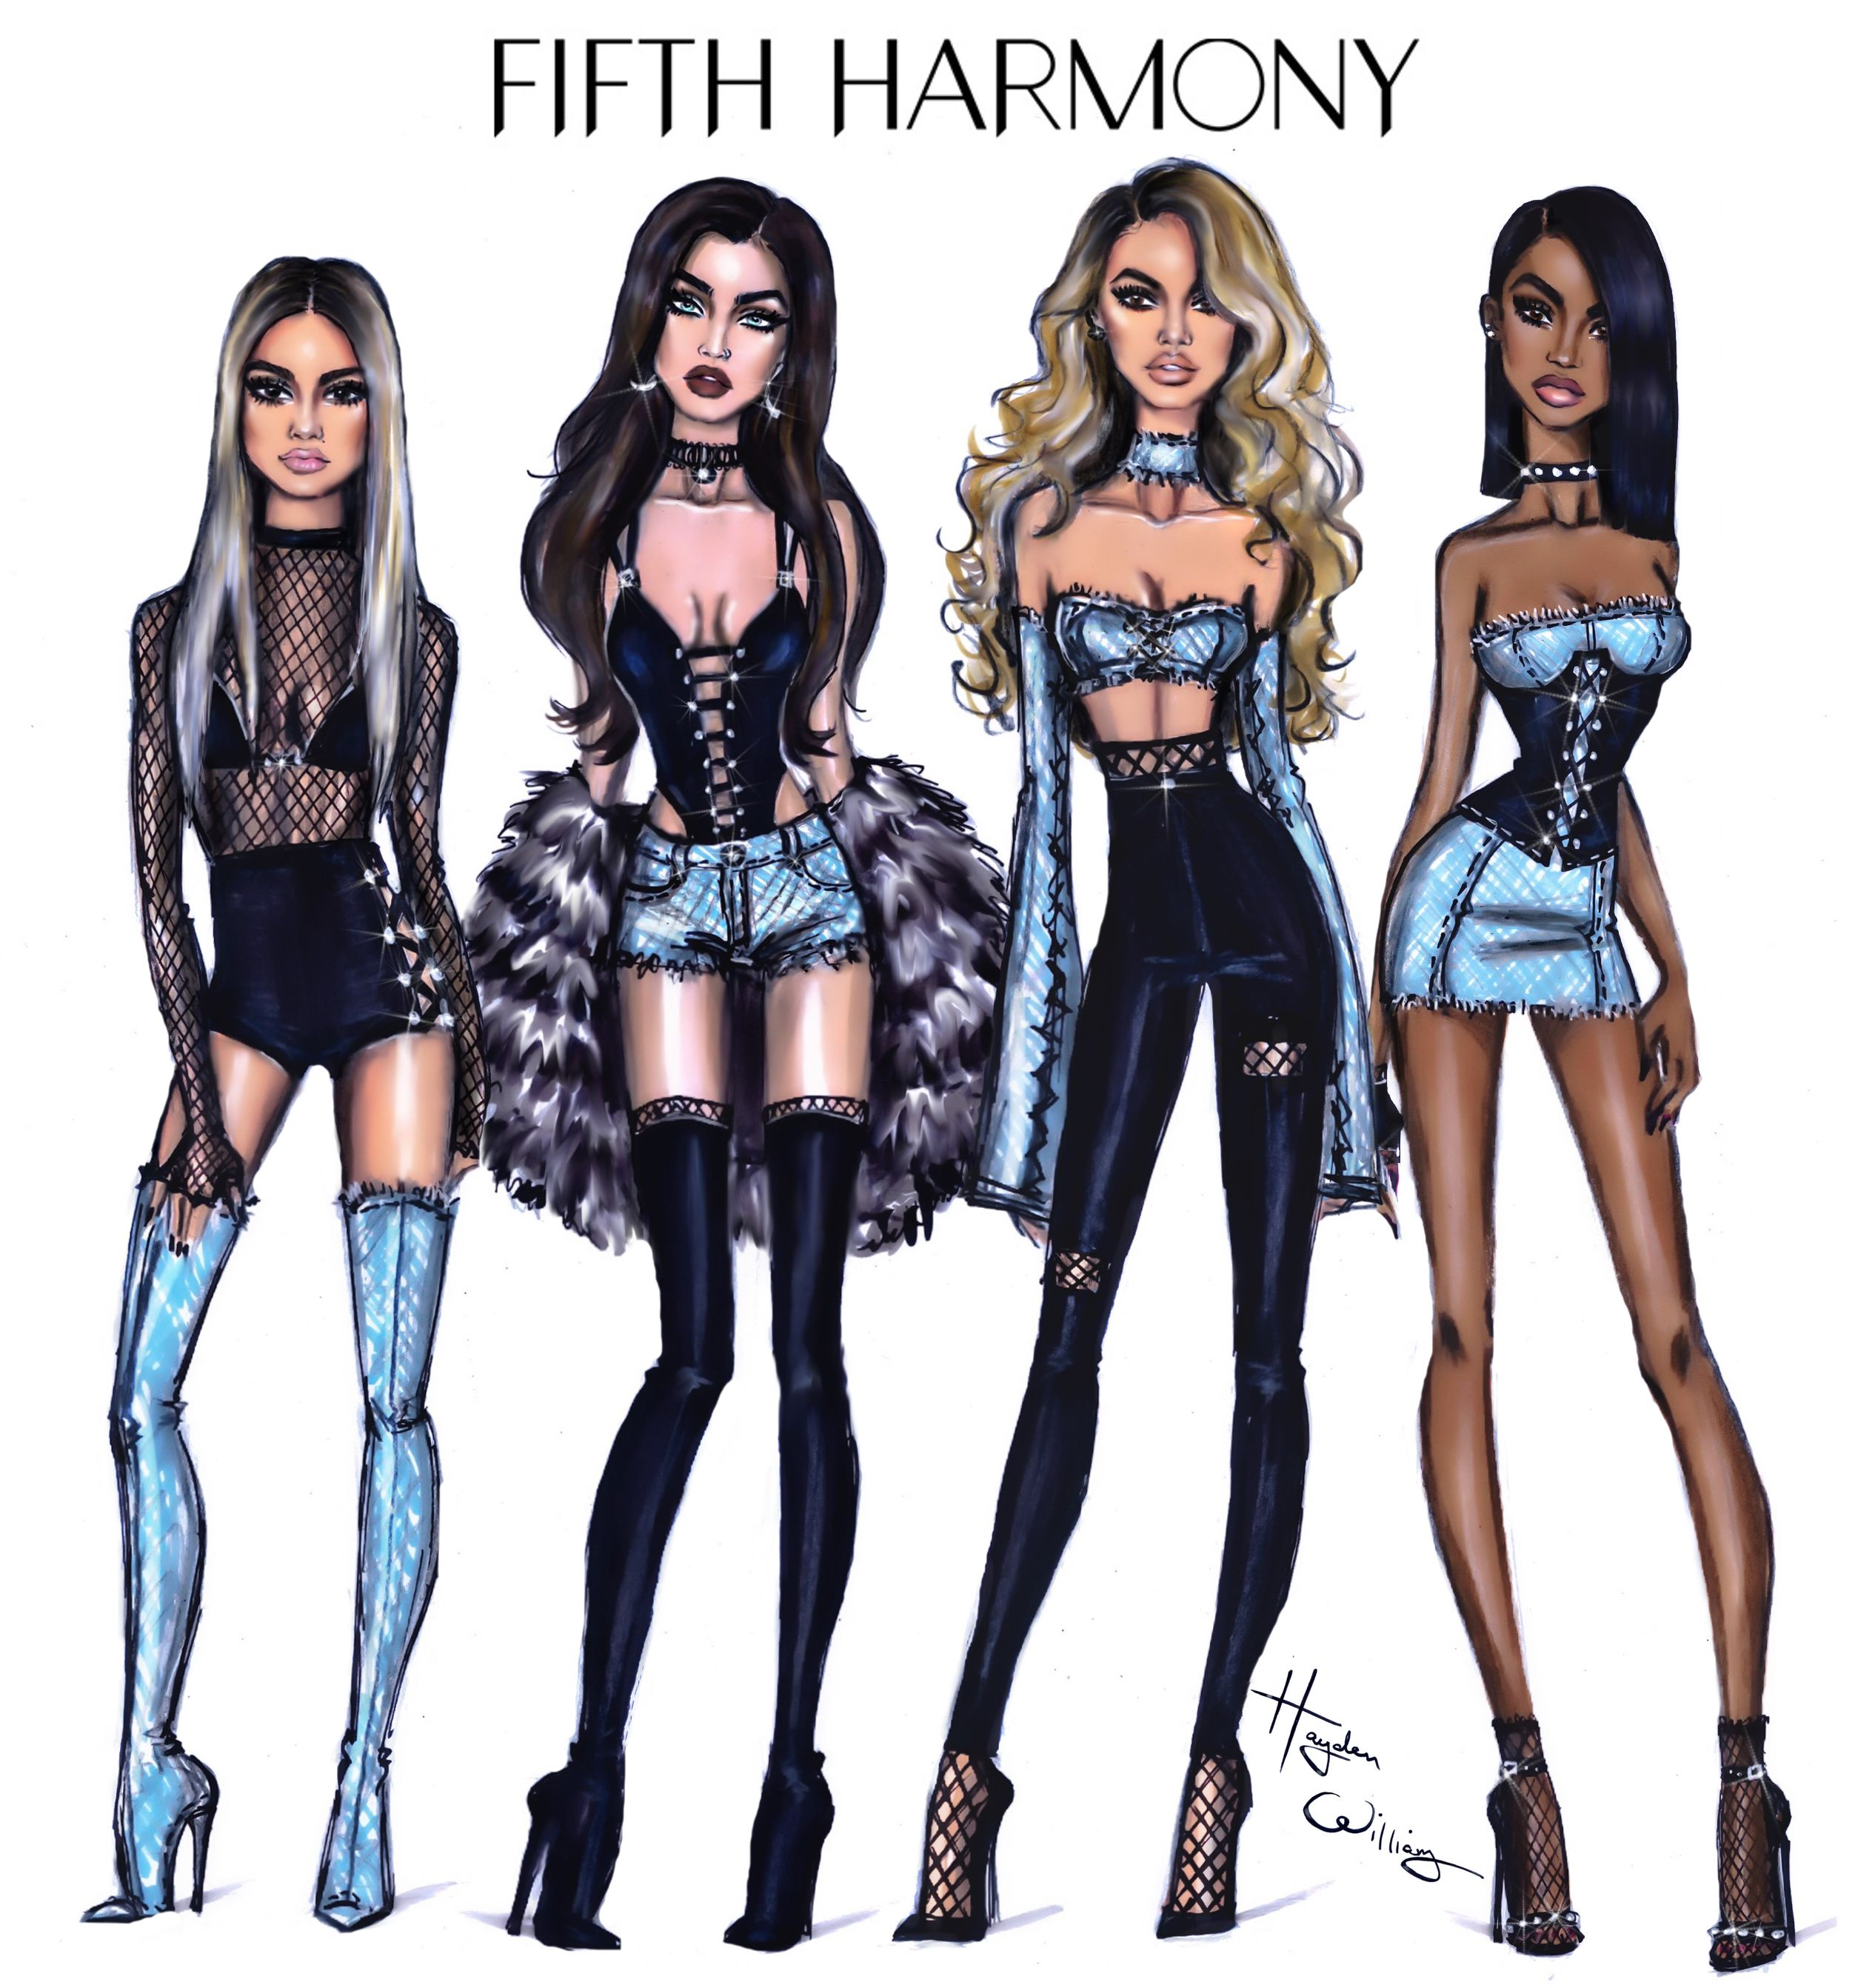 #FifthHarmony By Hayden Williams